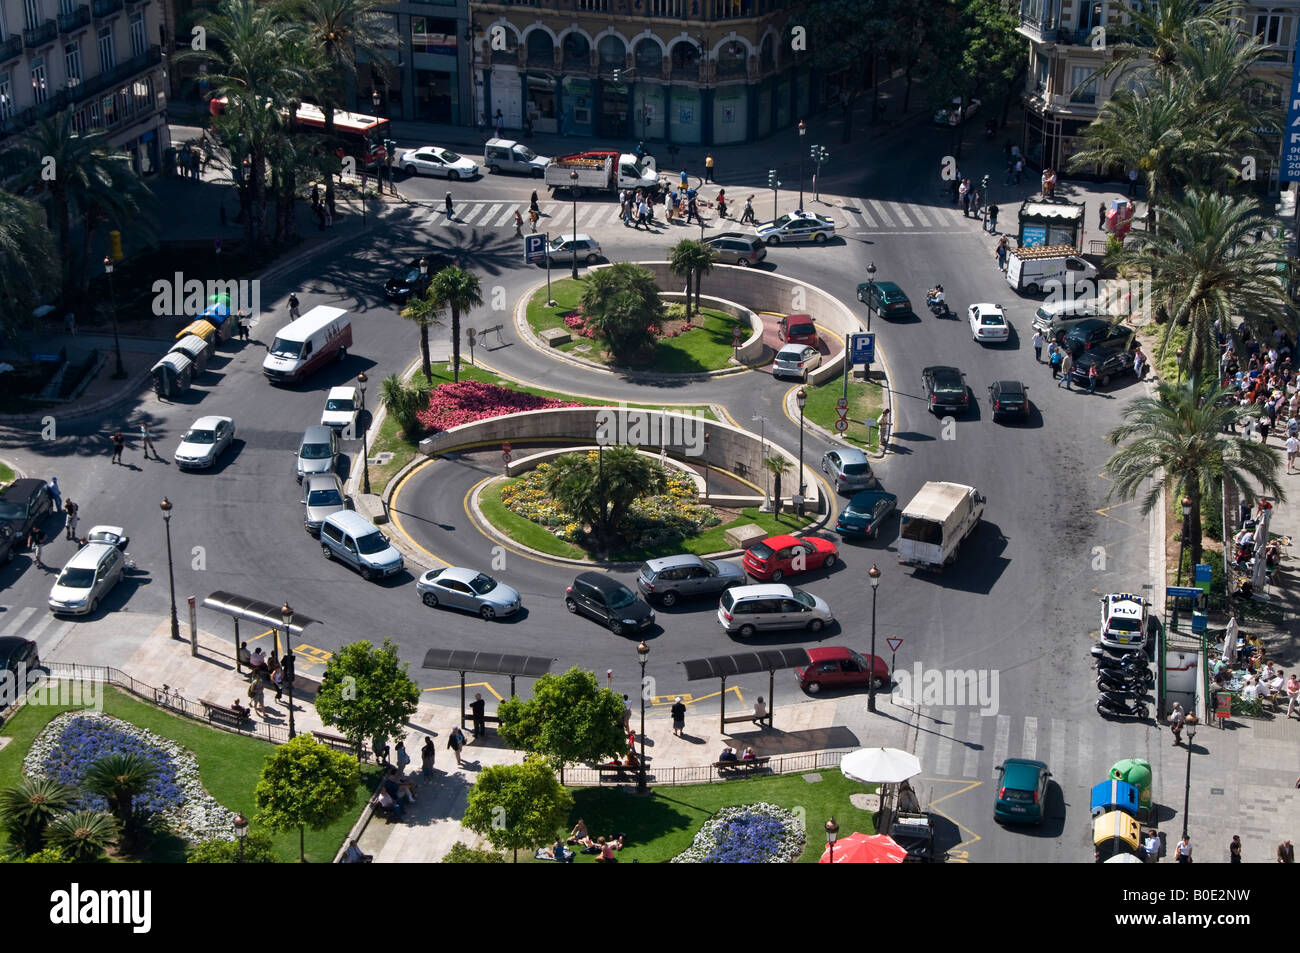 Figure of eight traffic island at the Plaza de la Reina. The clever design diverts cars to and from the underground Stock Photo